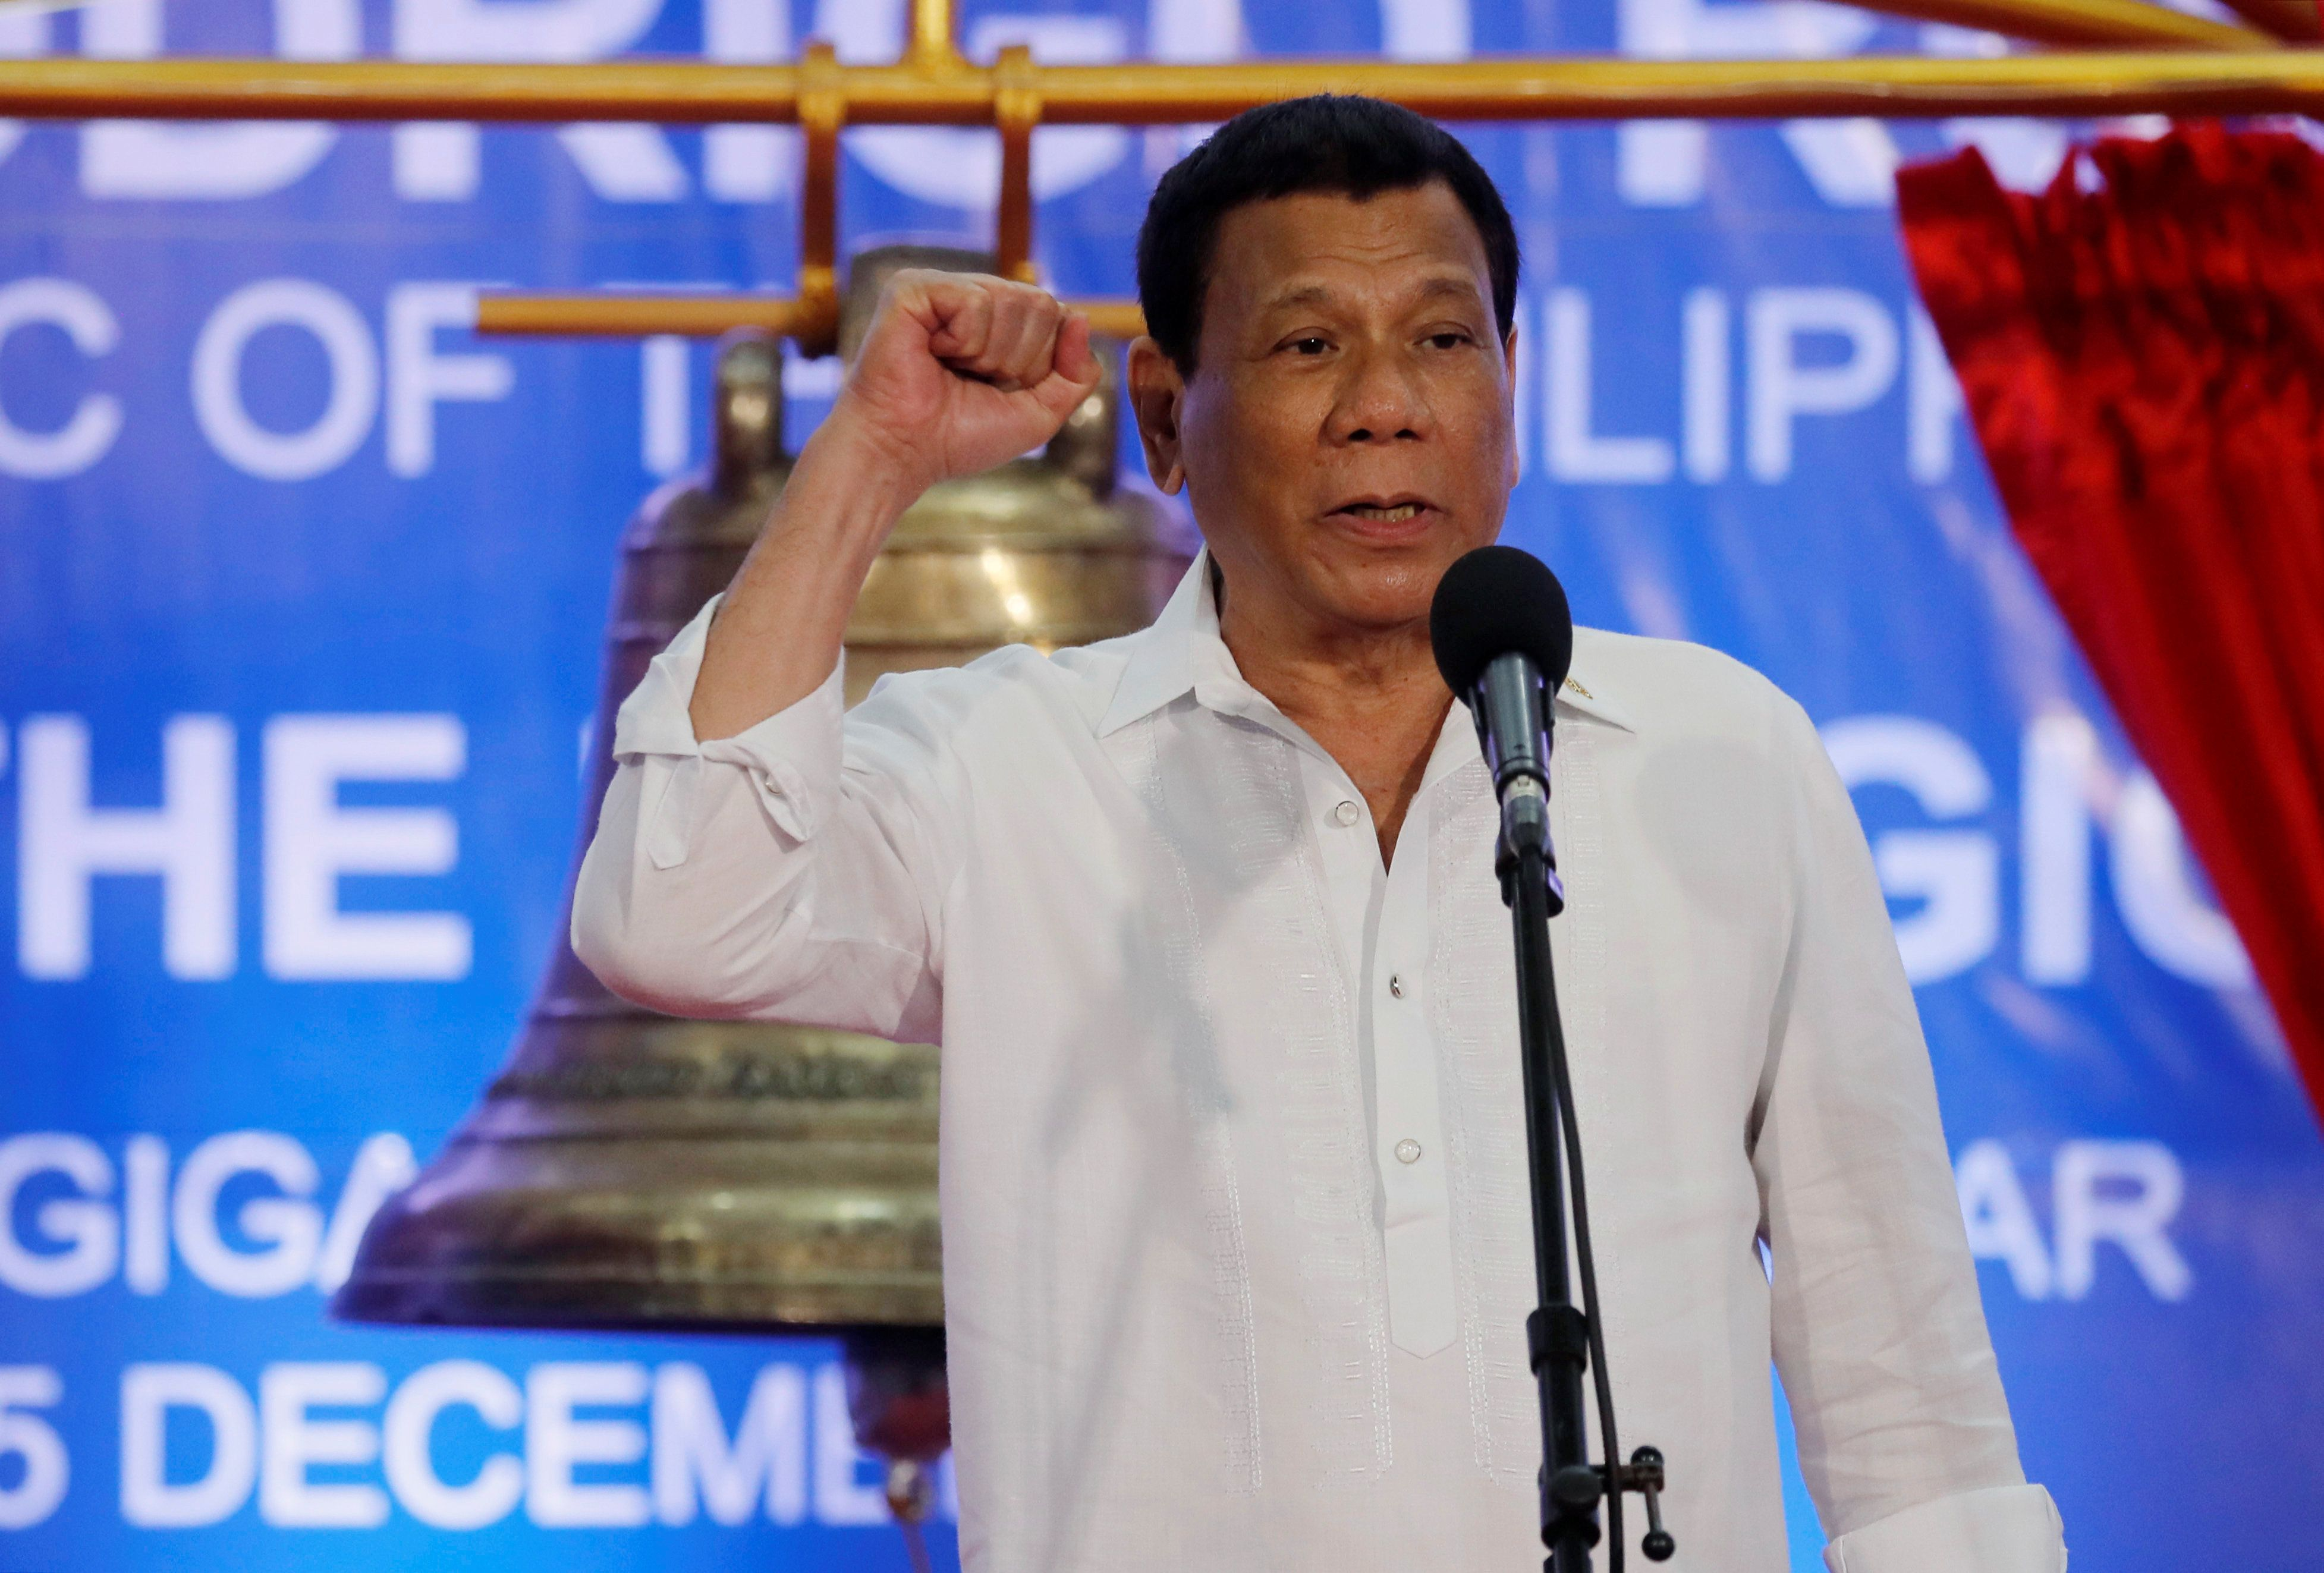 Philippine President Rodrigo Duterte said in a speech on Saturday that he